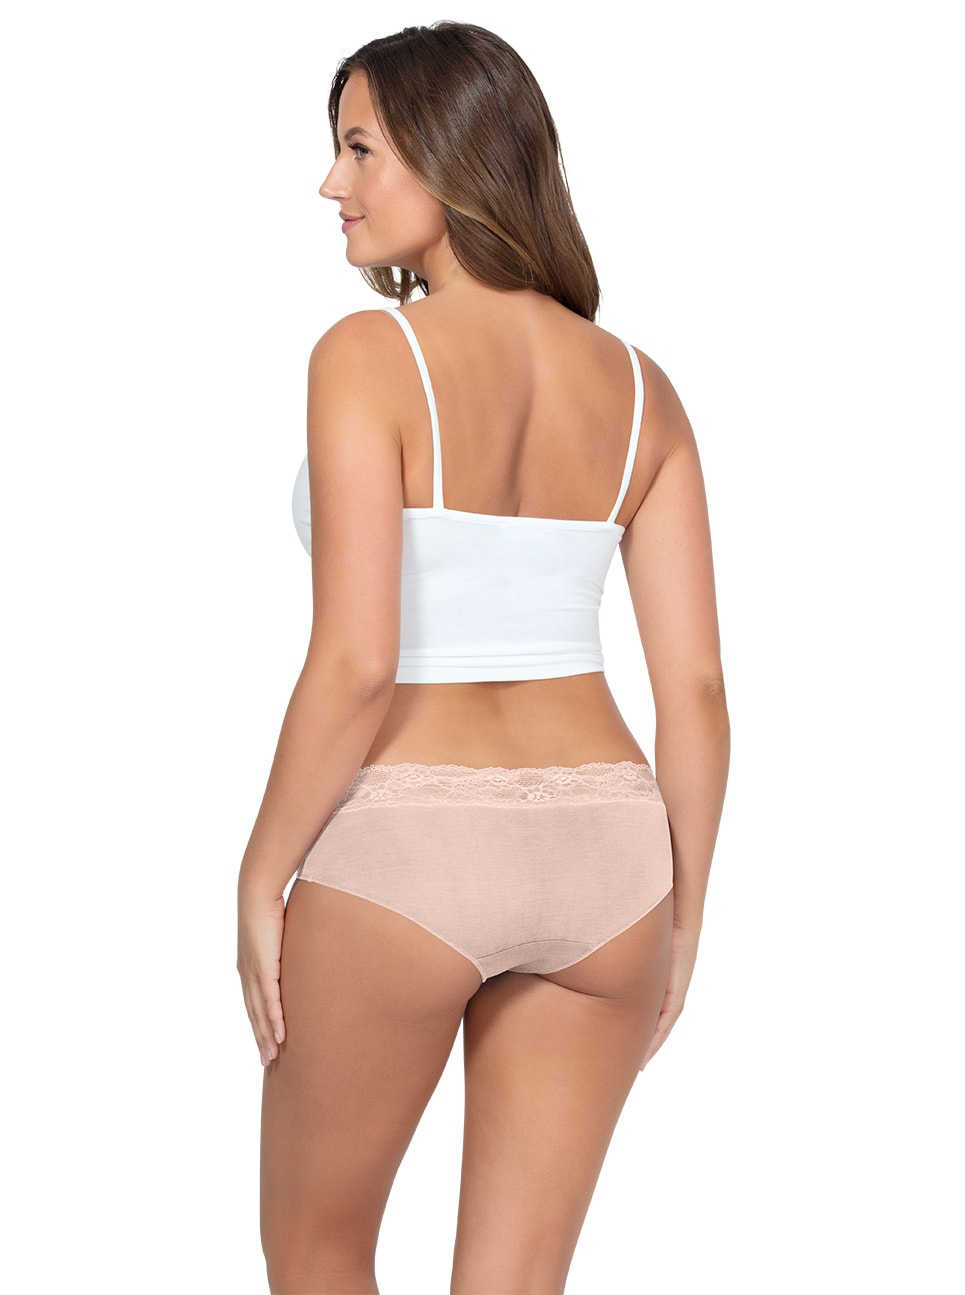 PARFAIT ParfaitPanty SoEssential HipsterPP503 Bare Back copy - Parfait Panty So Essential Hipster - Bare- PP503